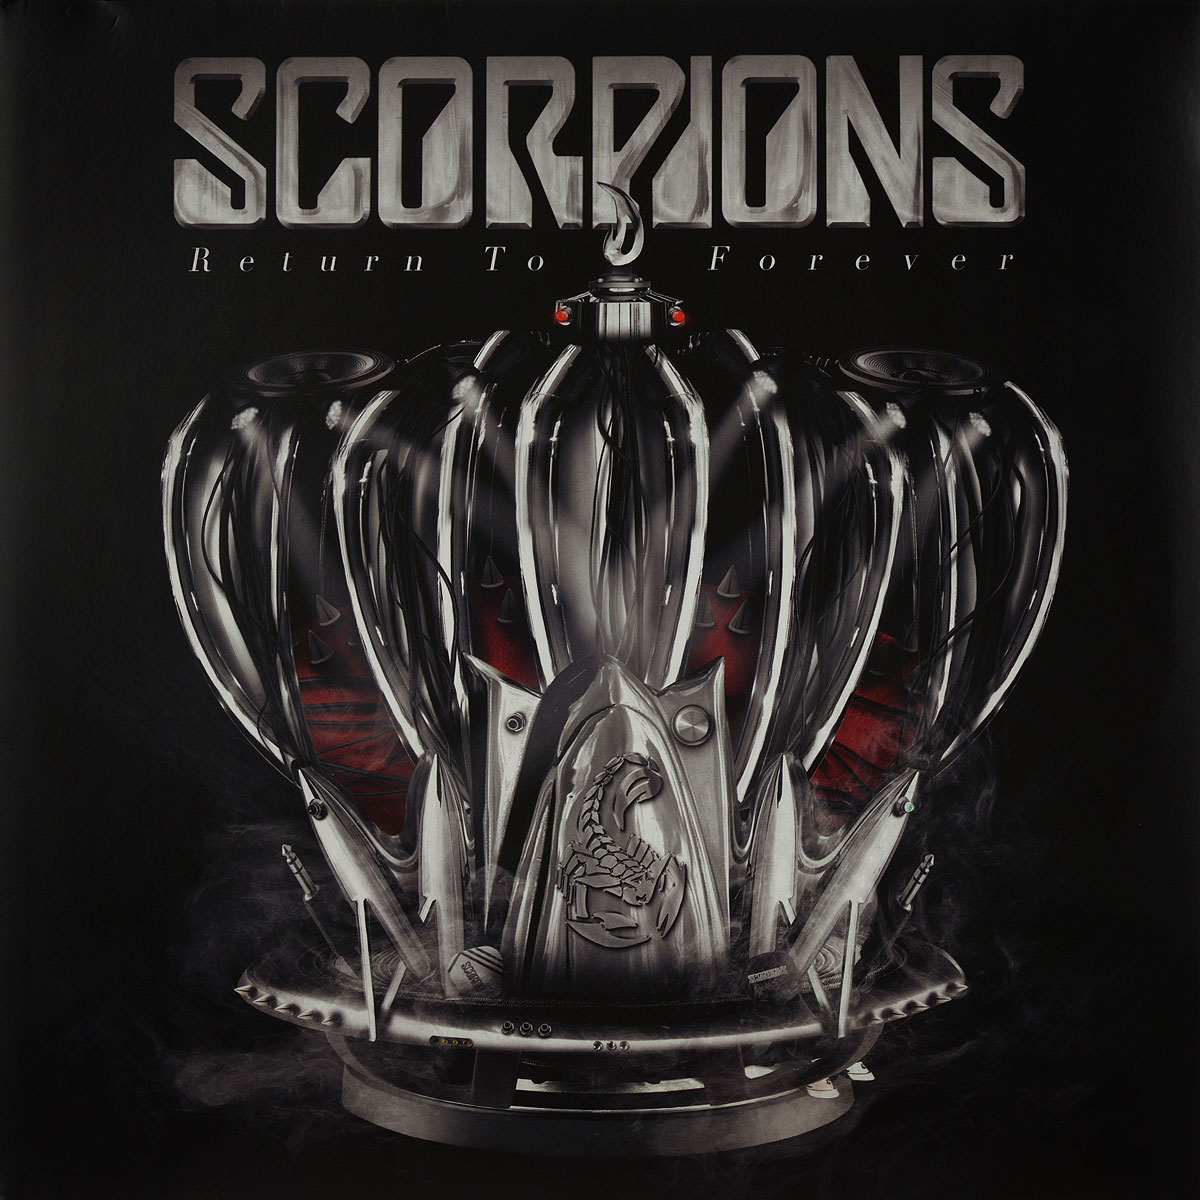 Scorpions Scorpions. Return To Forever (2 LP) scorpions scorpions born to touch your feelings best of rock ballads 2 lp colour